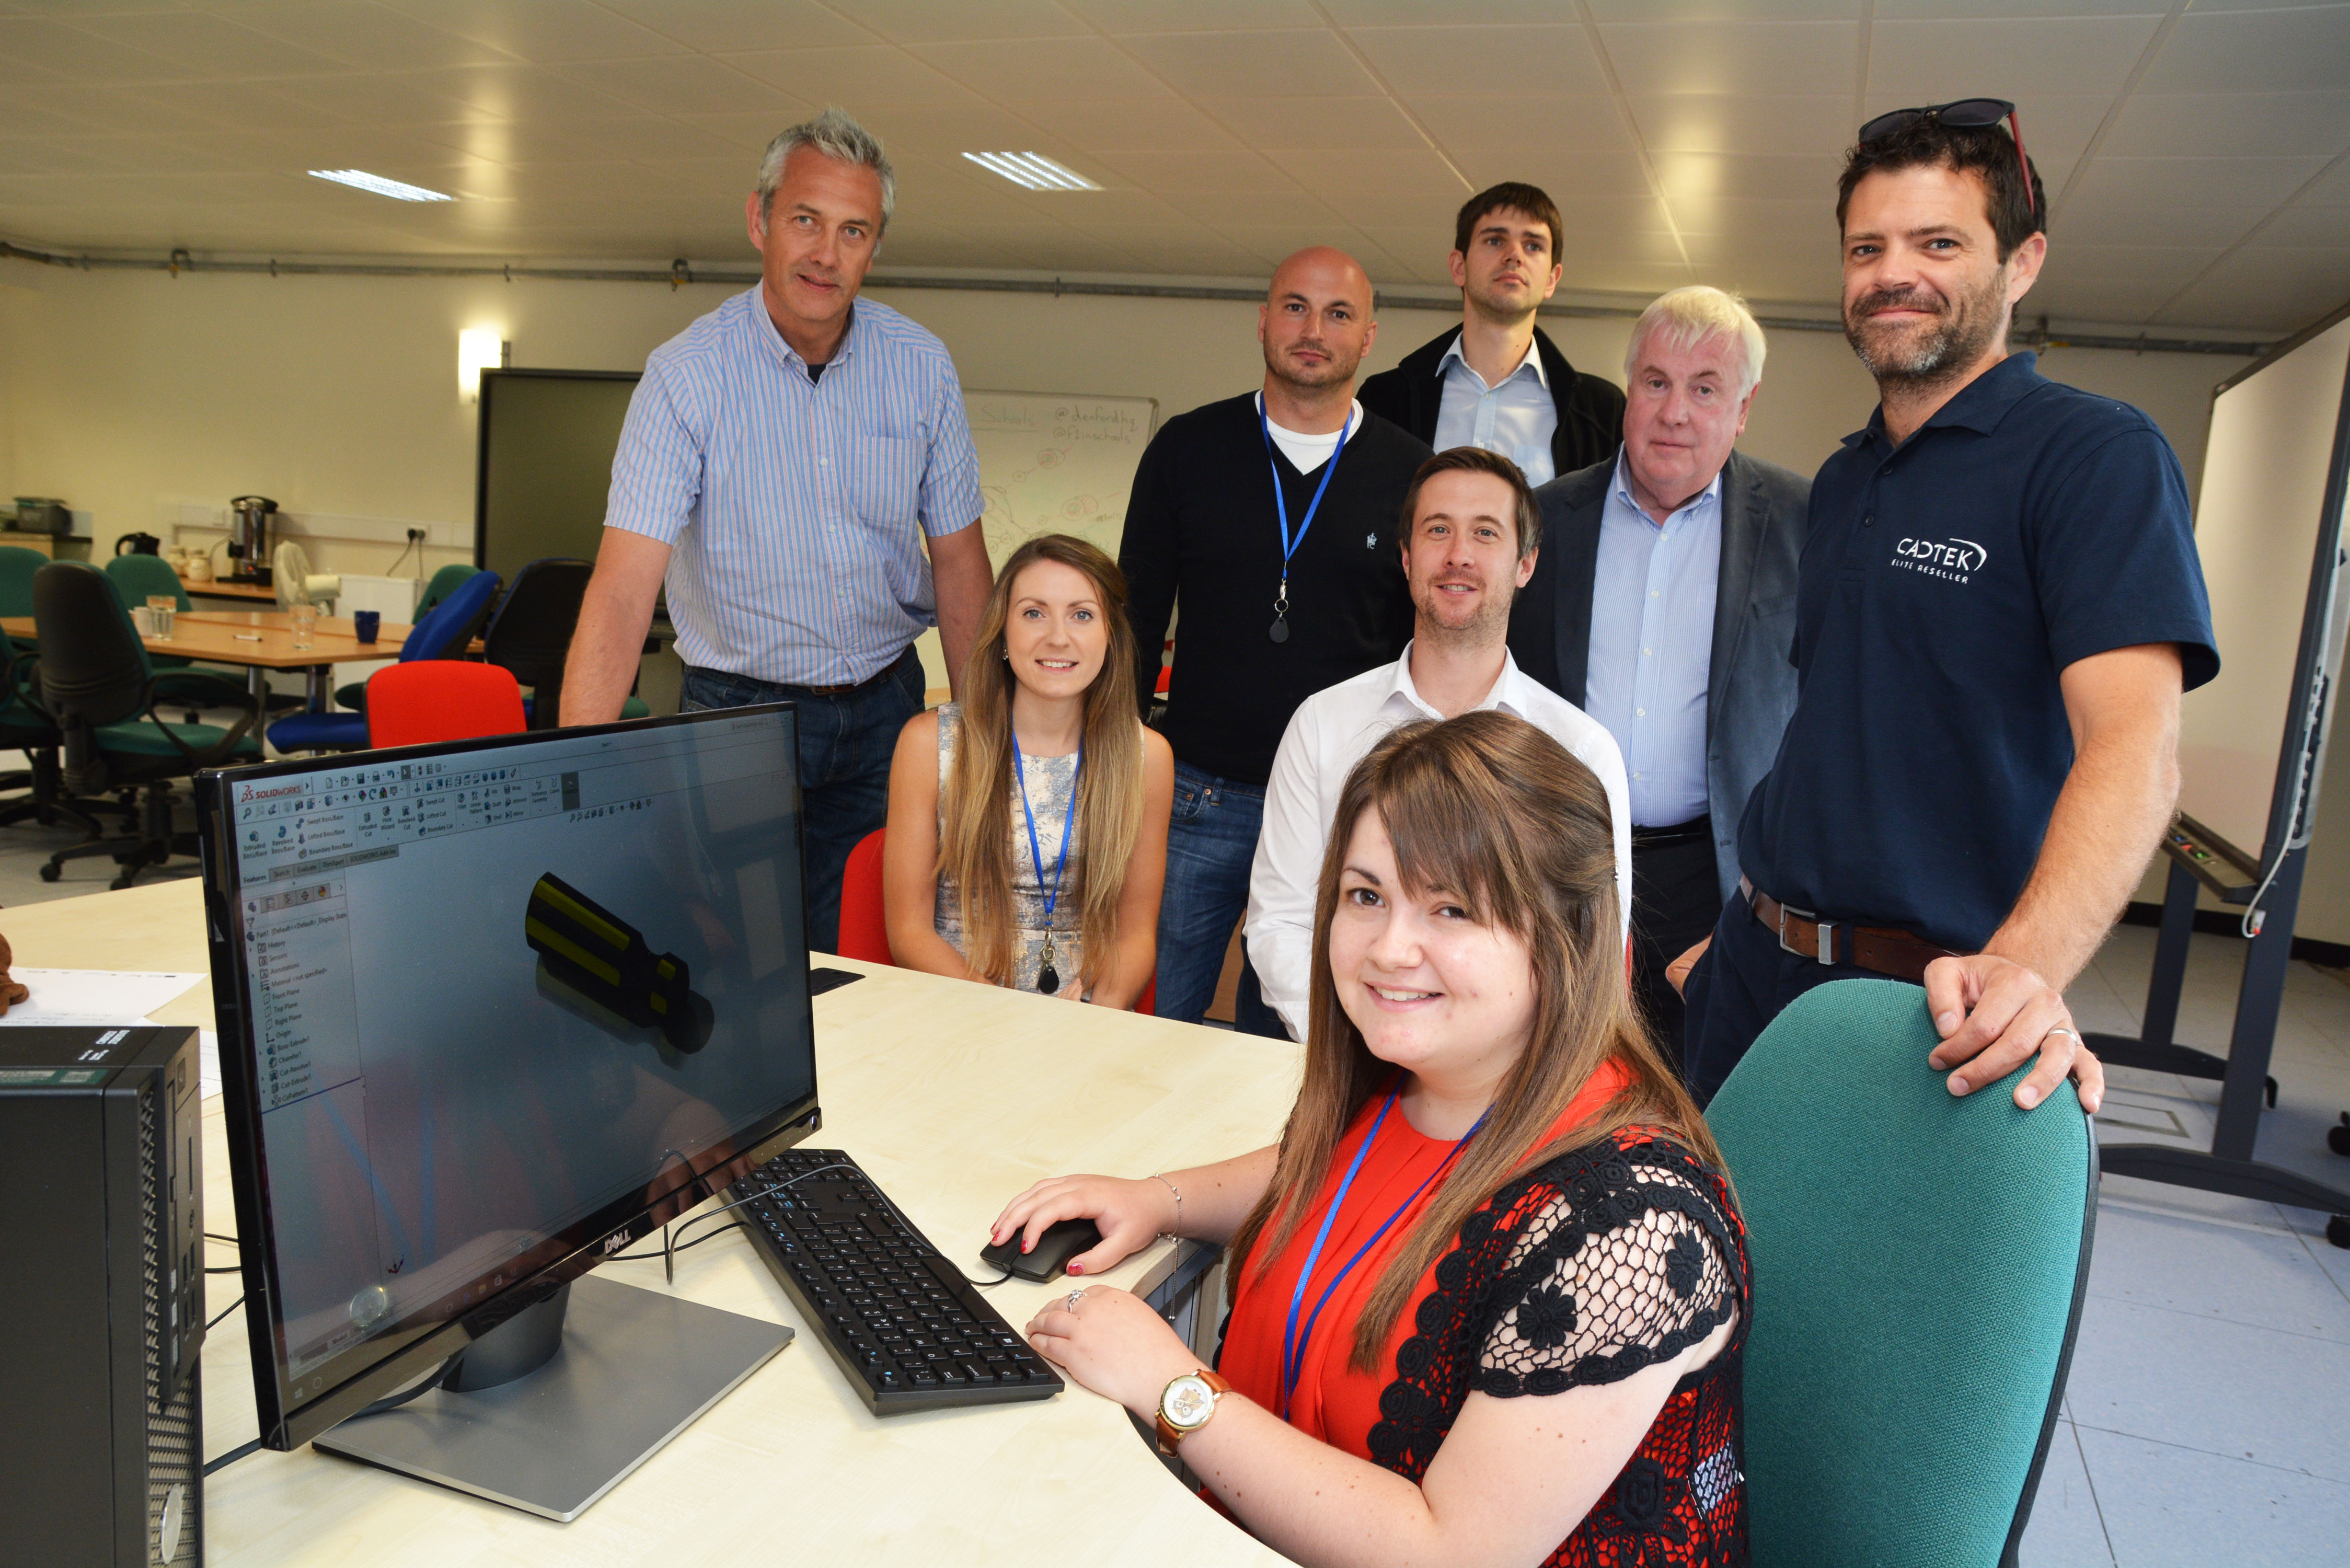 Pictured are (left to right, standing) Dave Thomas BIC Manager, Nik Curcio of Pembrokeshire Design, Thomas Wheeler of Insite, Cllr Keith Lewis, Jamie Thain of CADTEK, (sitting) Annabelle McLaren of Insite, Gethin Davies of CADTEK, Ellie Wheeler of Insite.